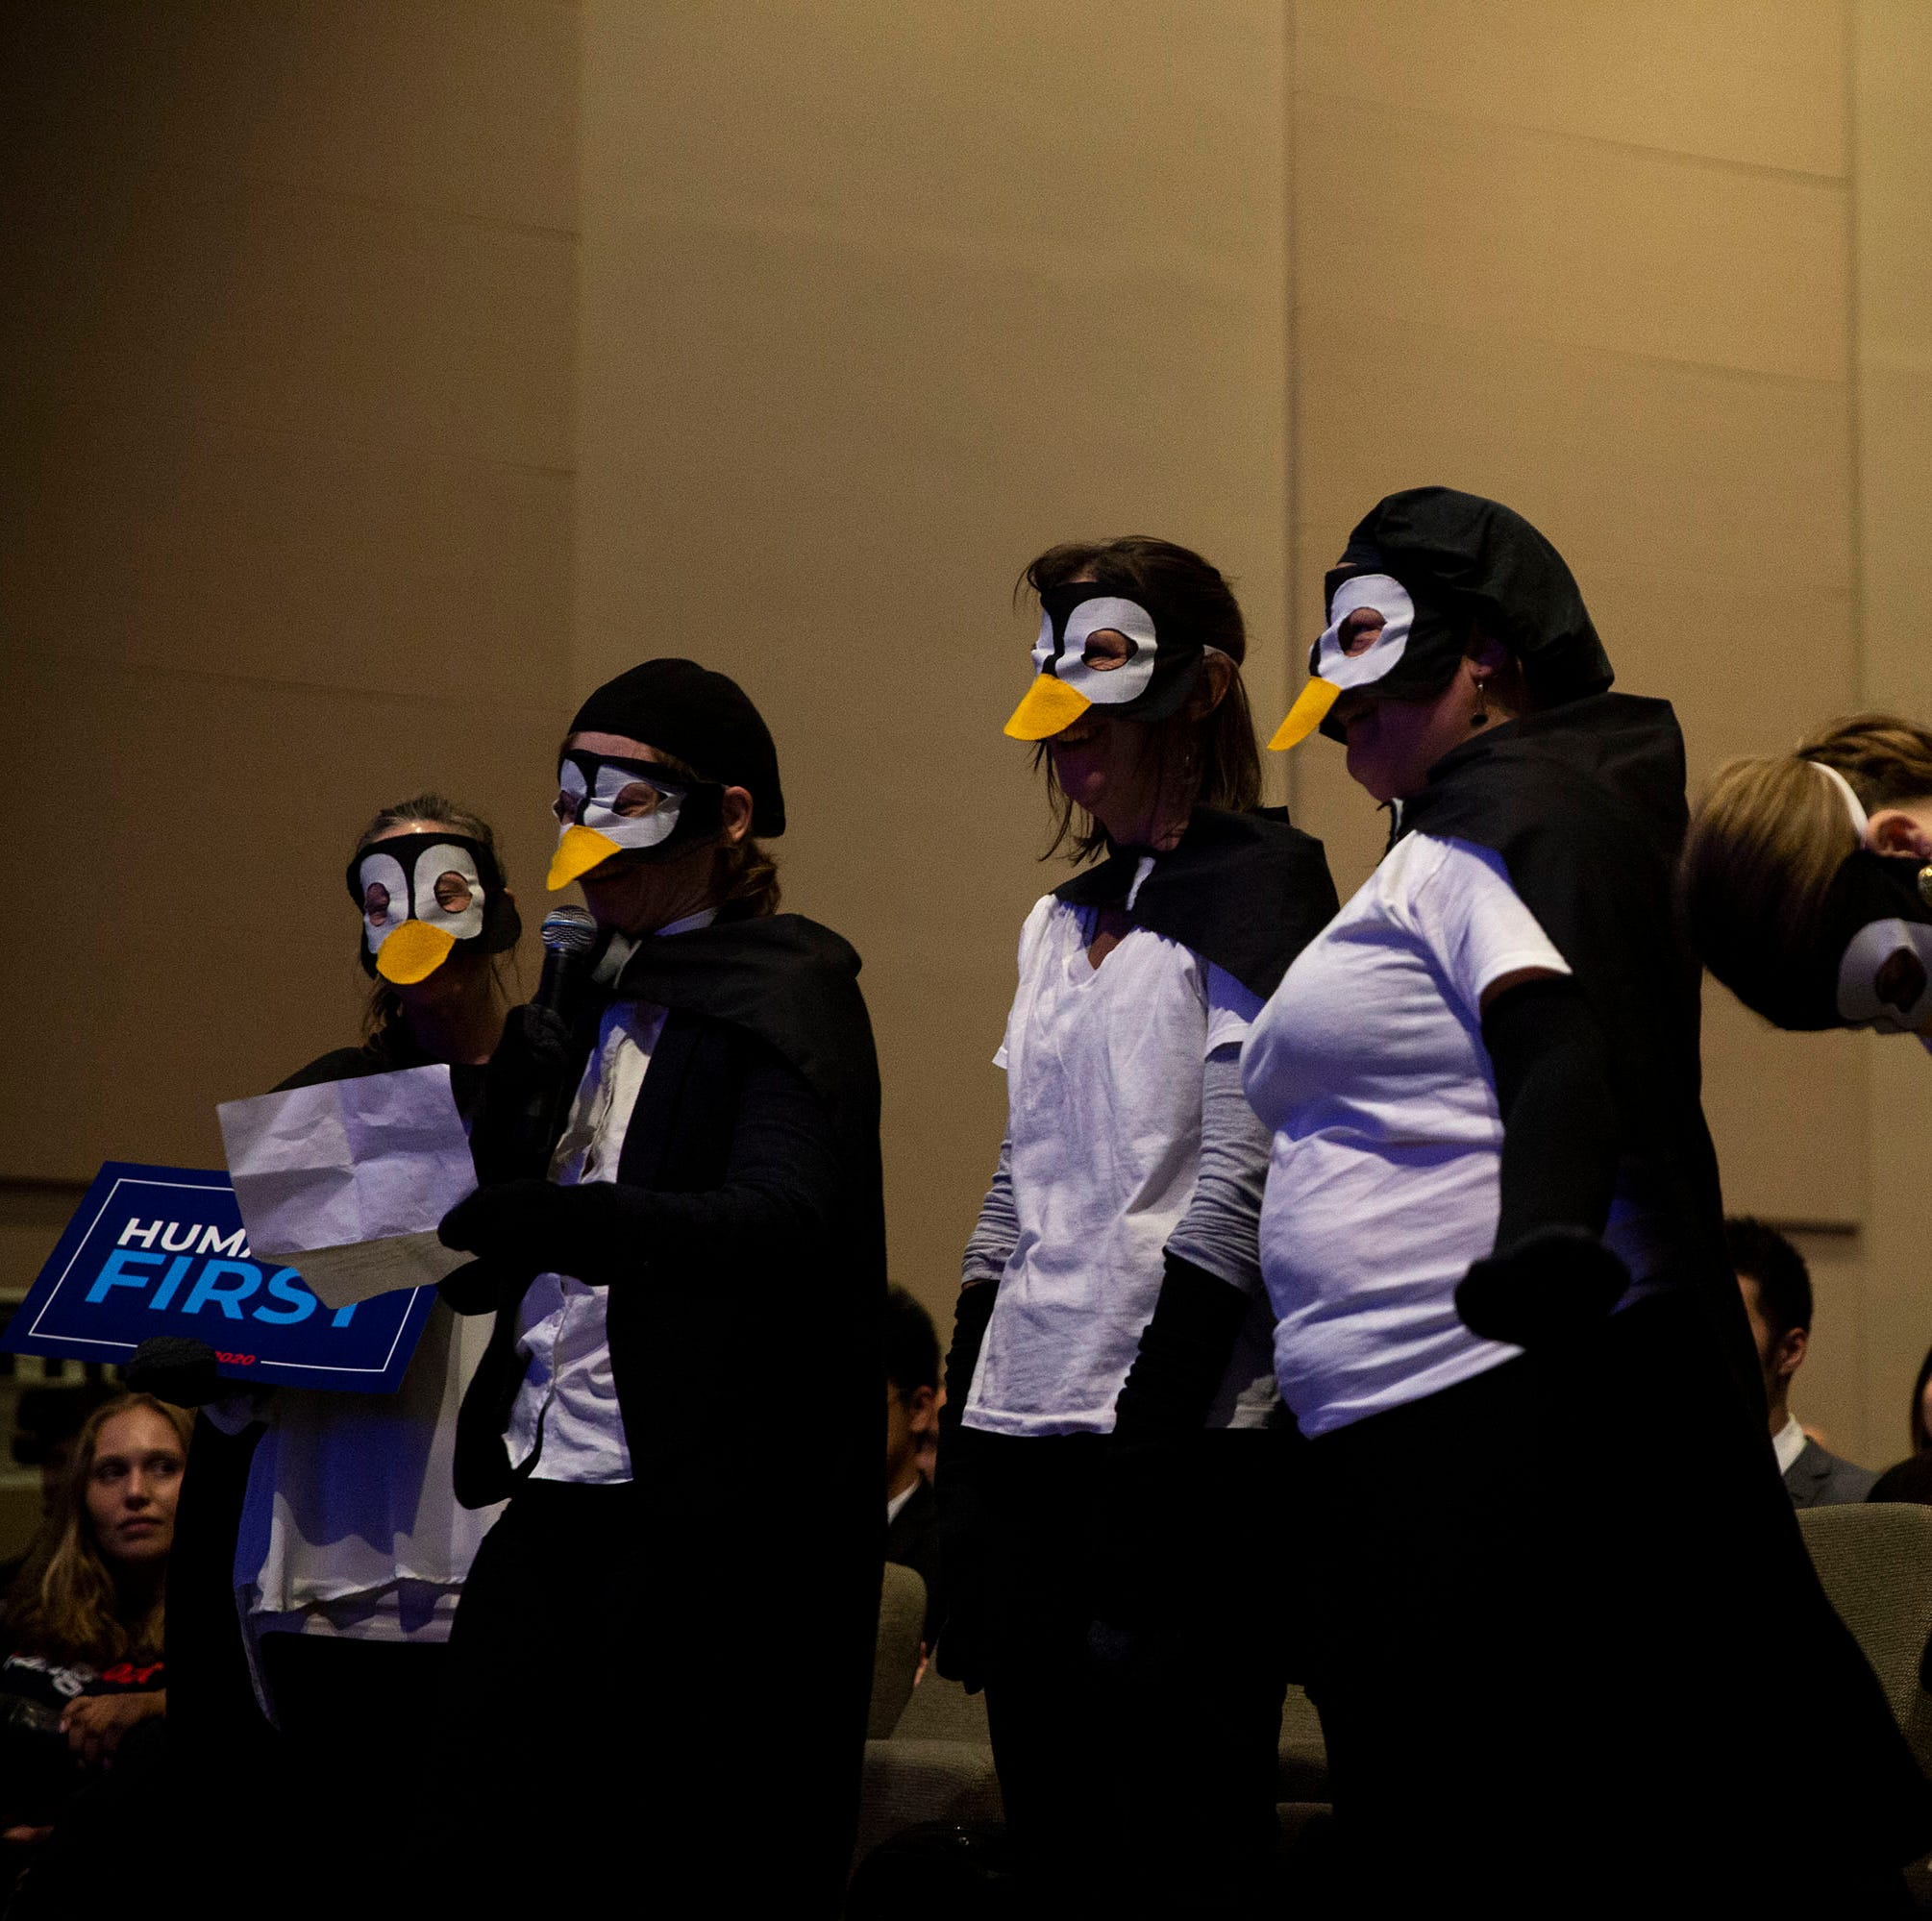 Penguins plus presidential candidate Andrew Yang equals climate change talk